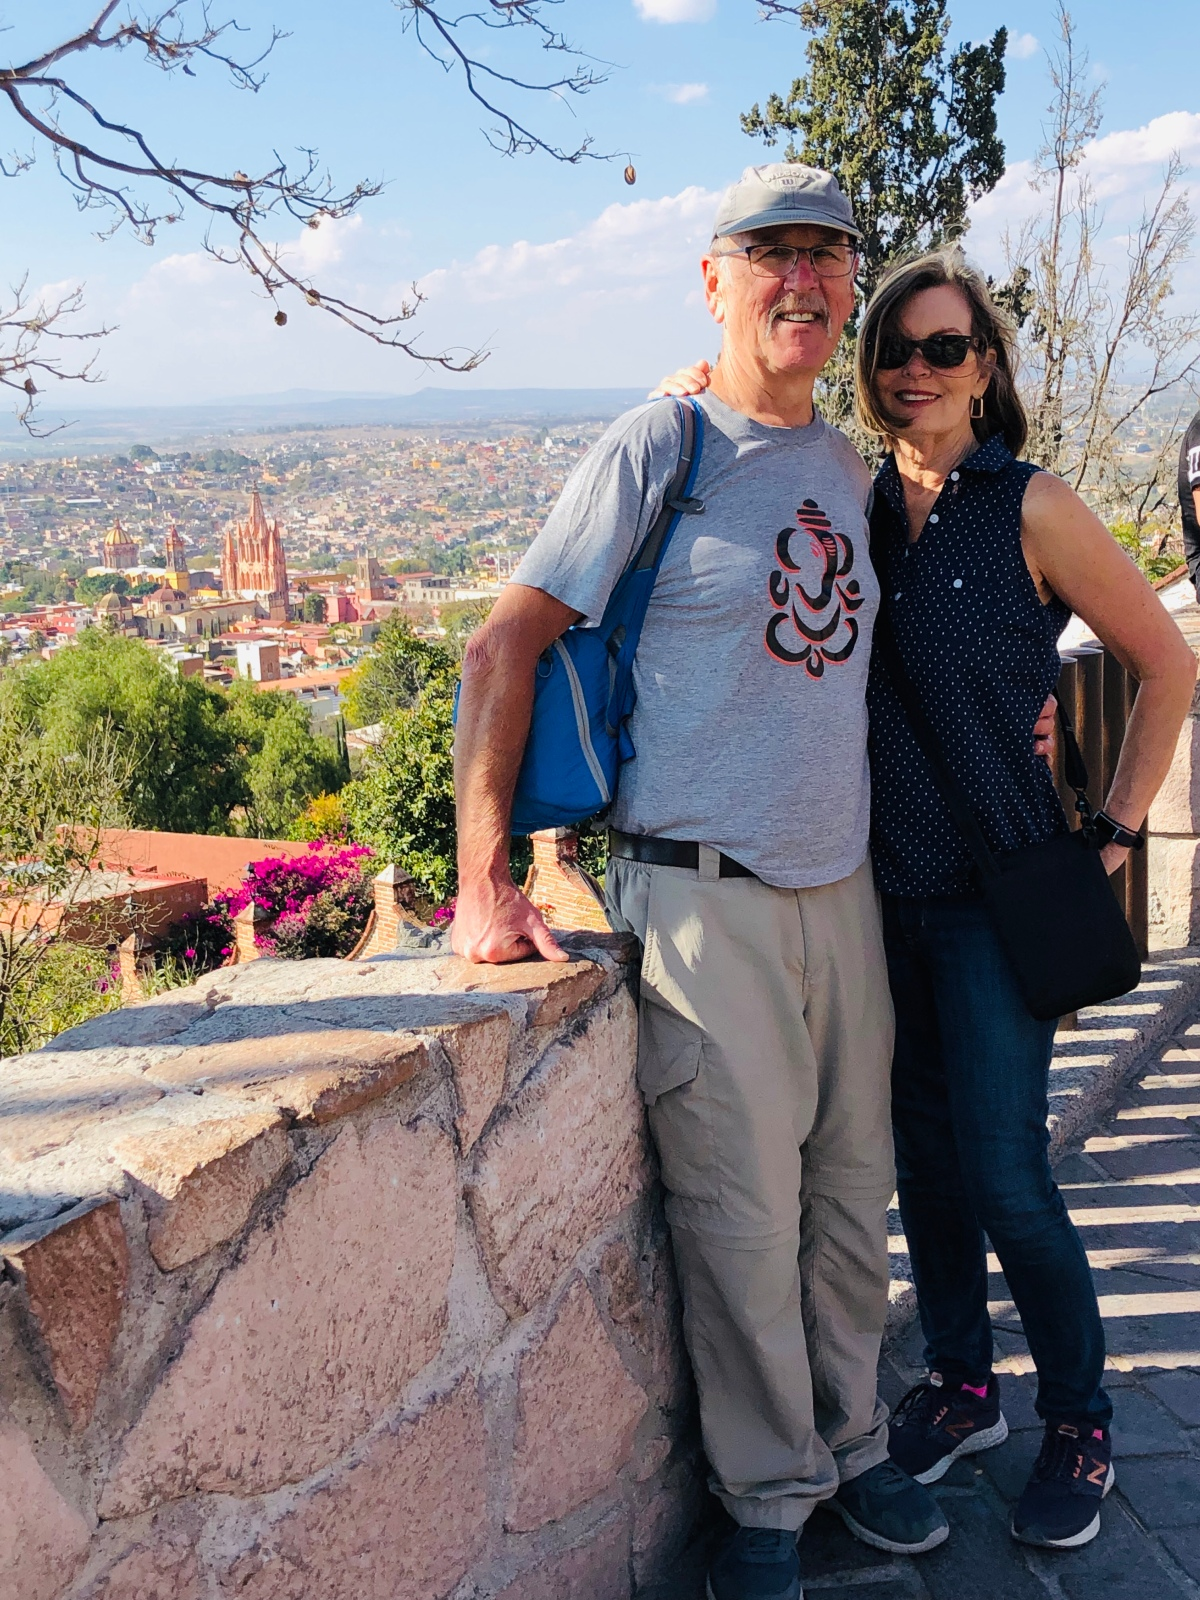 San Miguel de Allende – A Pleasure to Finally Meet You!